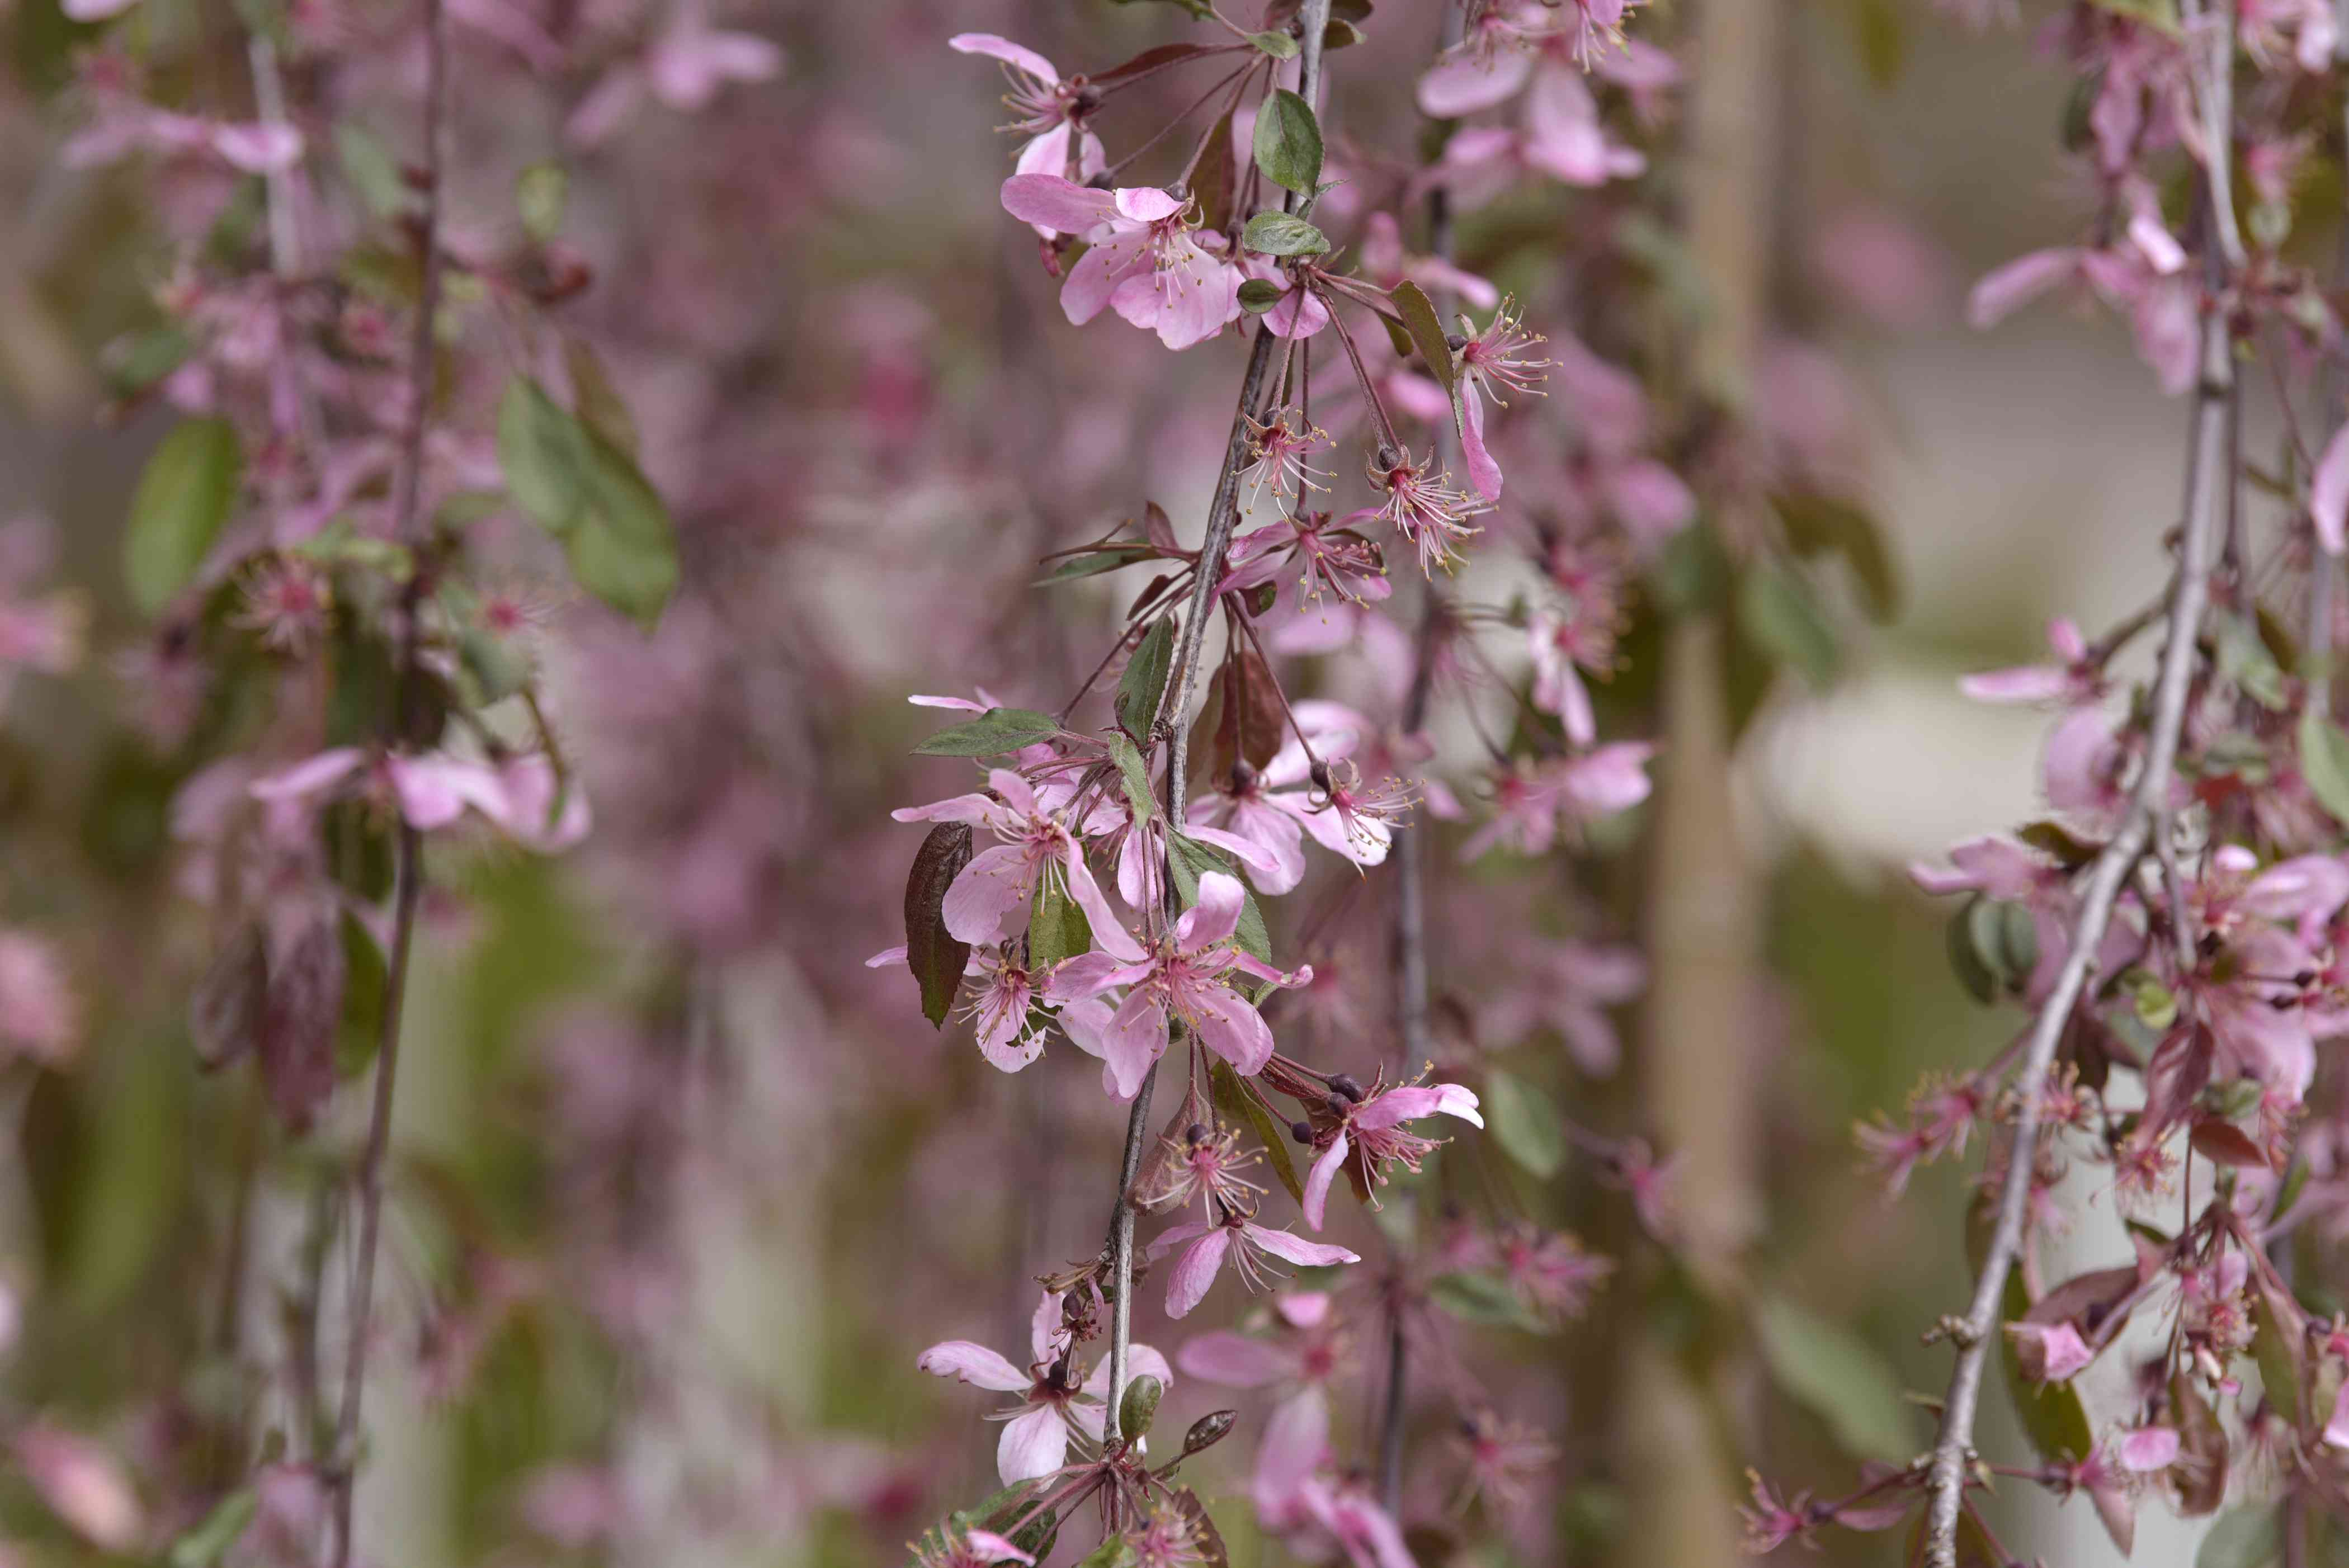 Weeping crabapple tree branches with small pink blossoms closeup